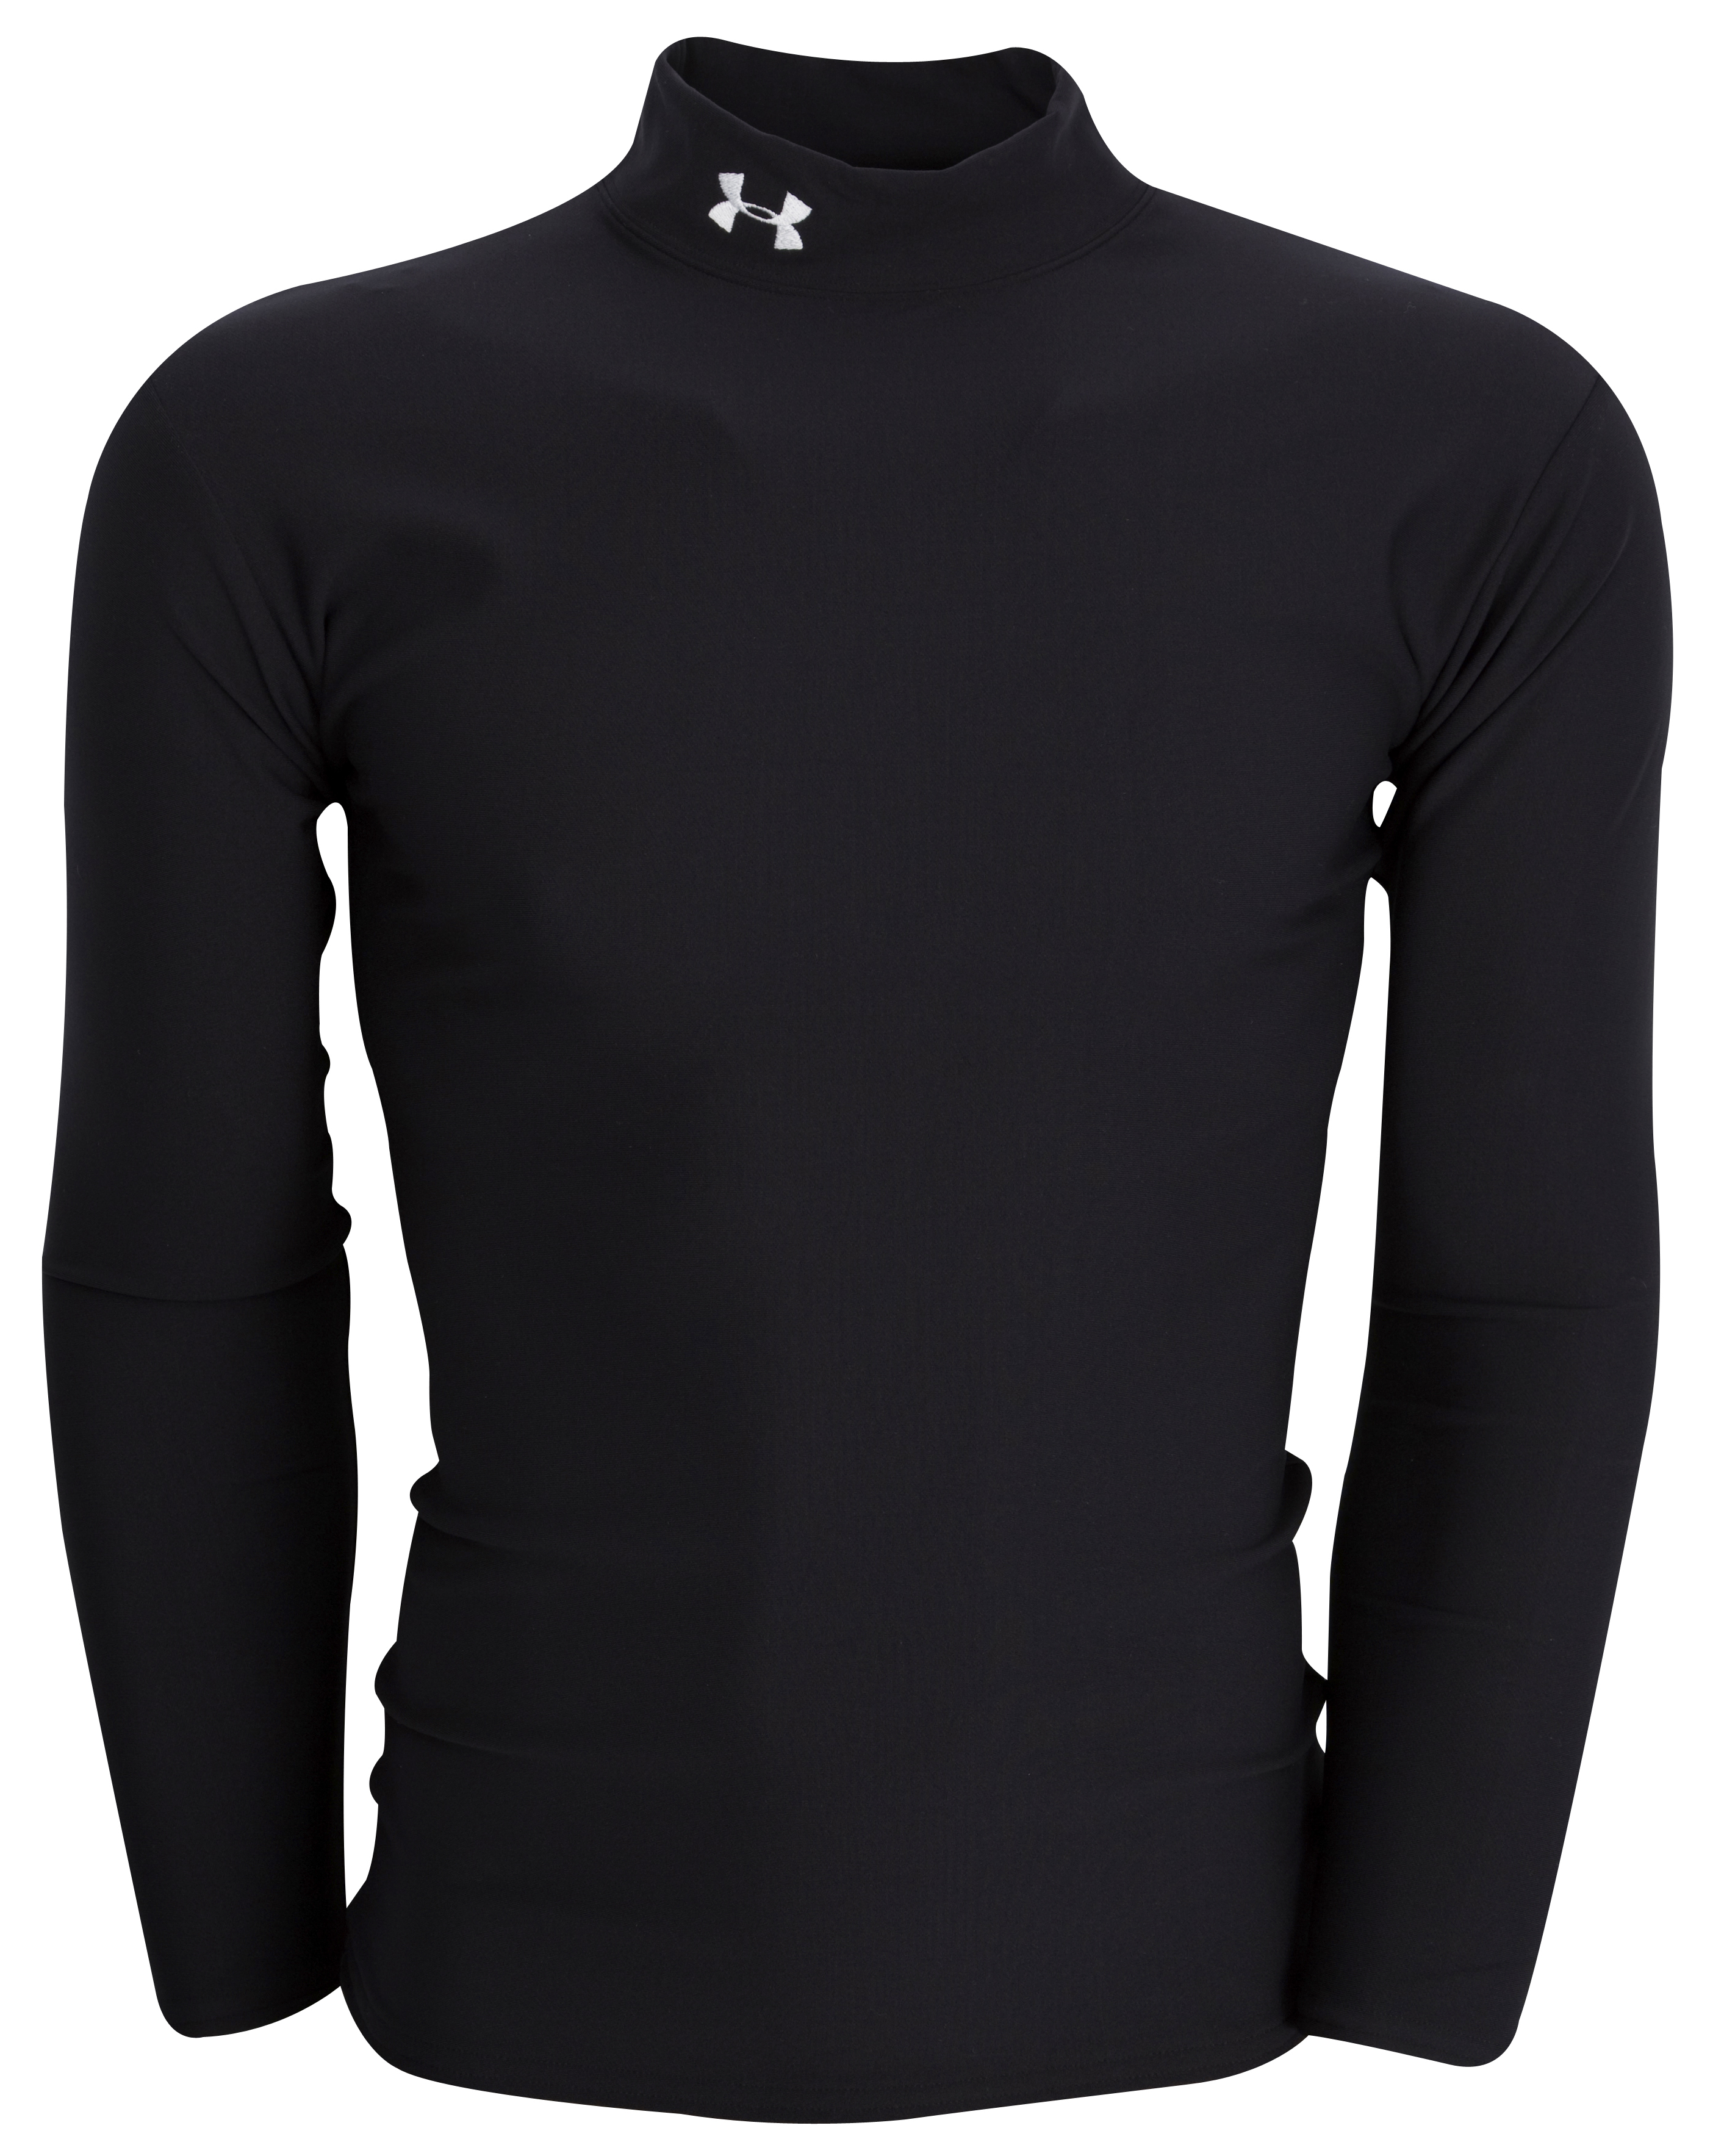 Under Armour Coldgear Mock Shirt - Black - Long Sleeve